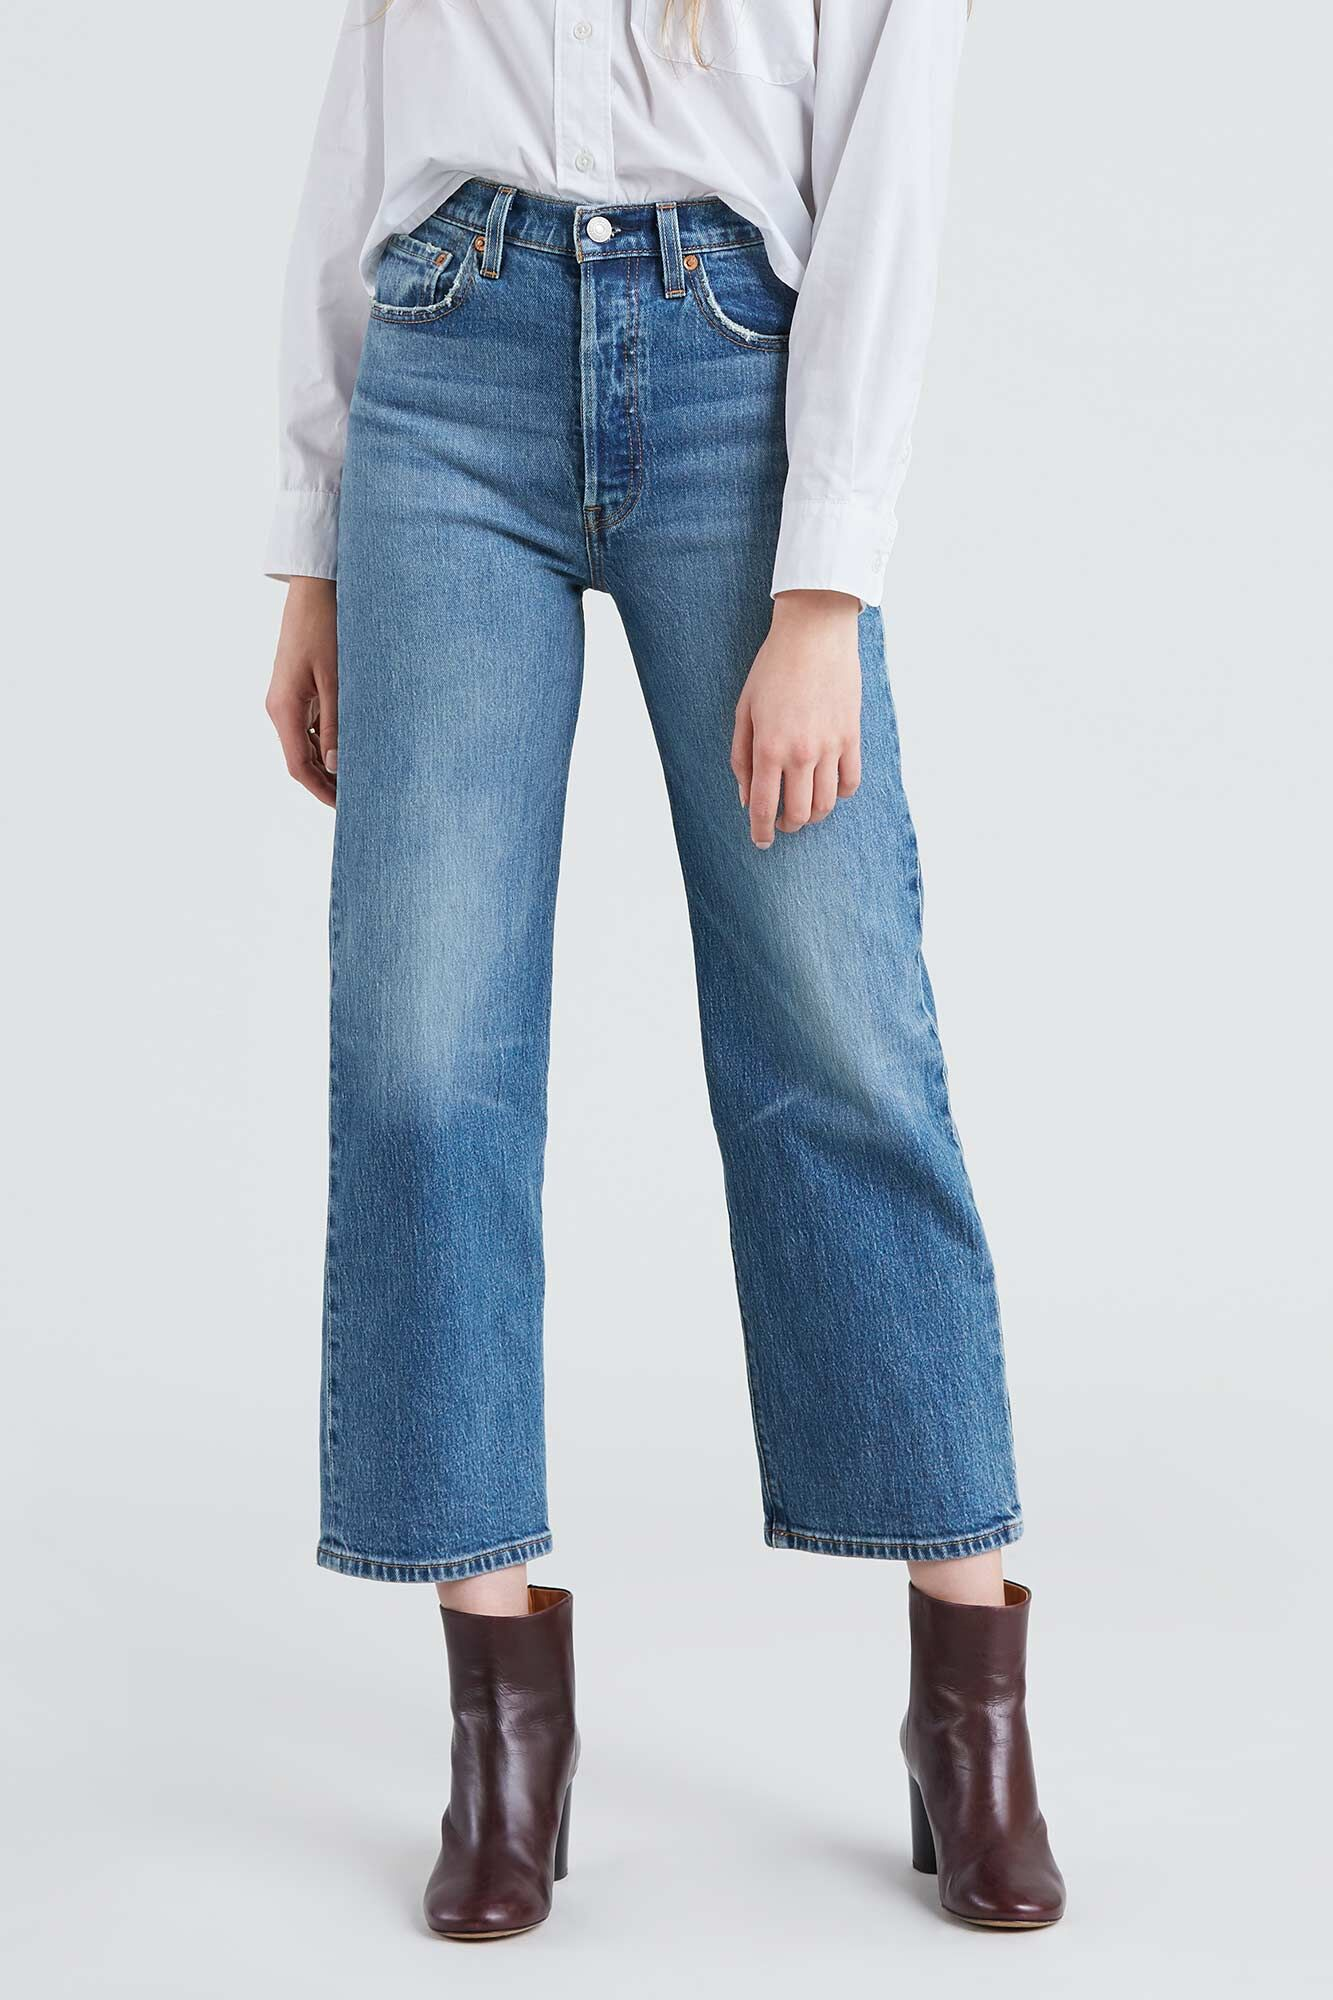 quần jeans ống rộng levi's